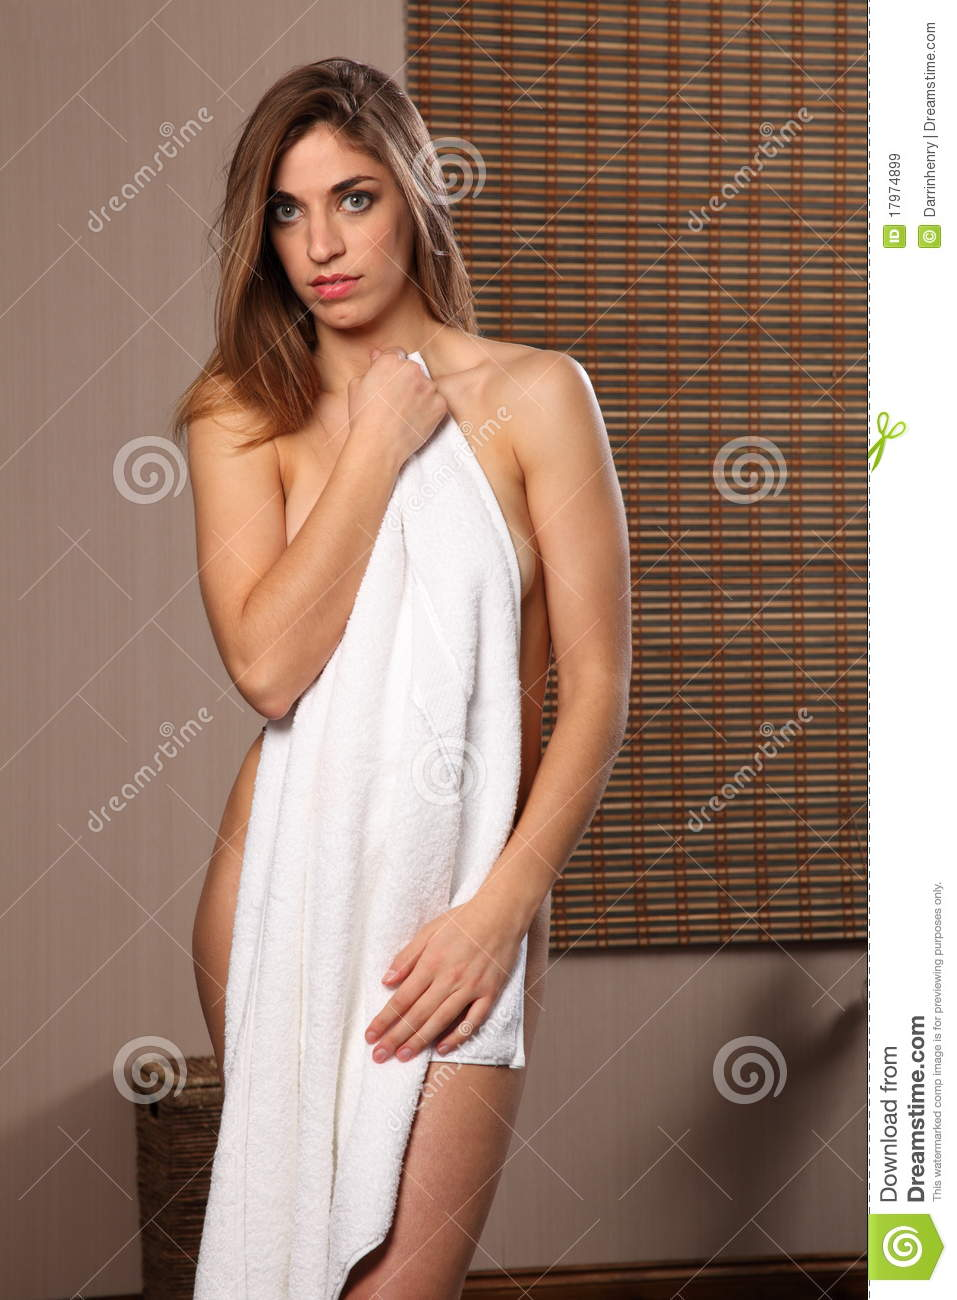 Beautiful Healthy Nude Woman Towel Over Body Royalty Free Stock Images -4834